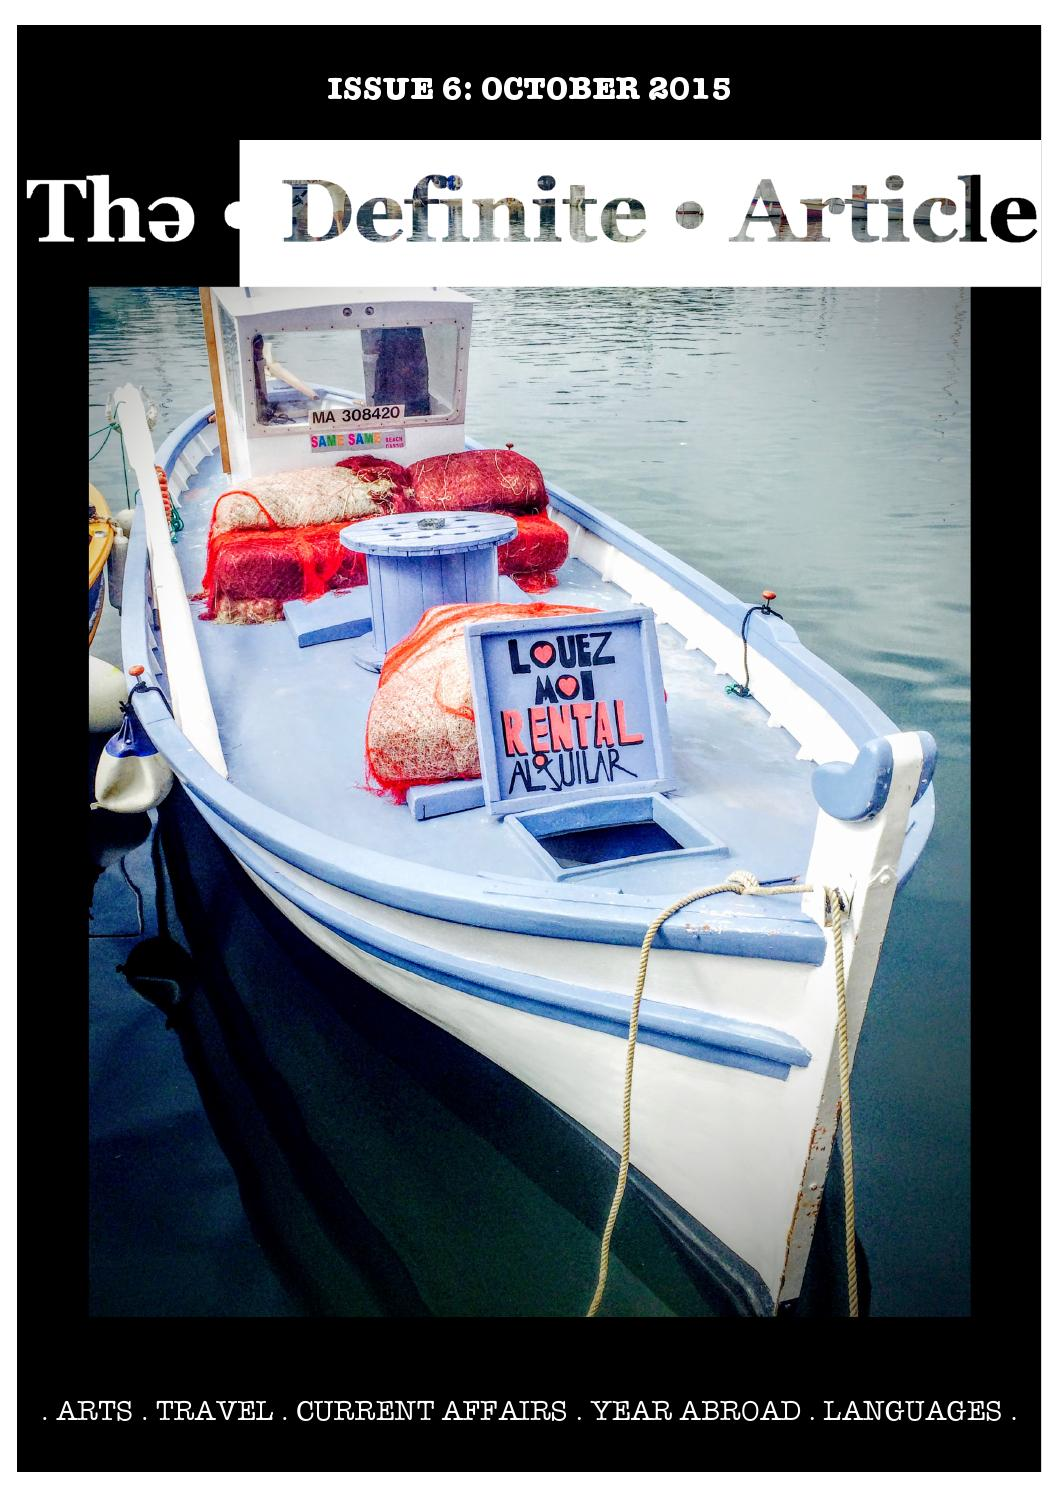 The Definite Article Issue 6: October 2015 by The Definite